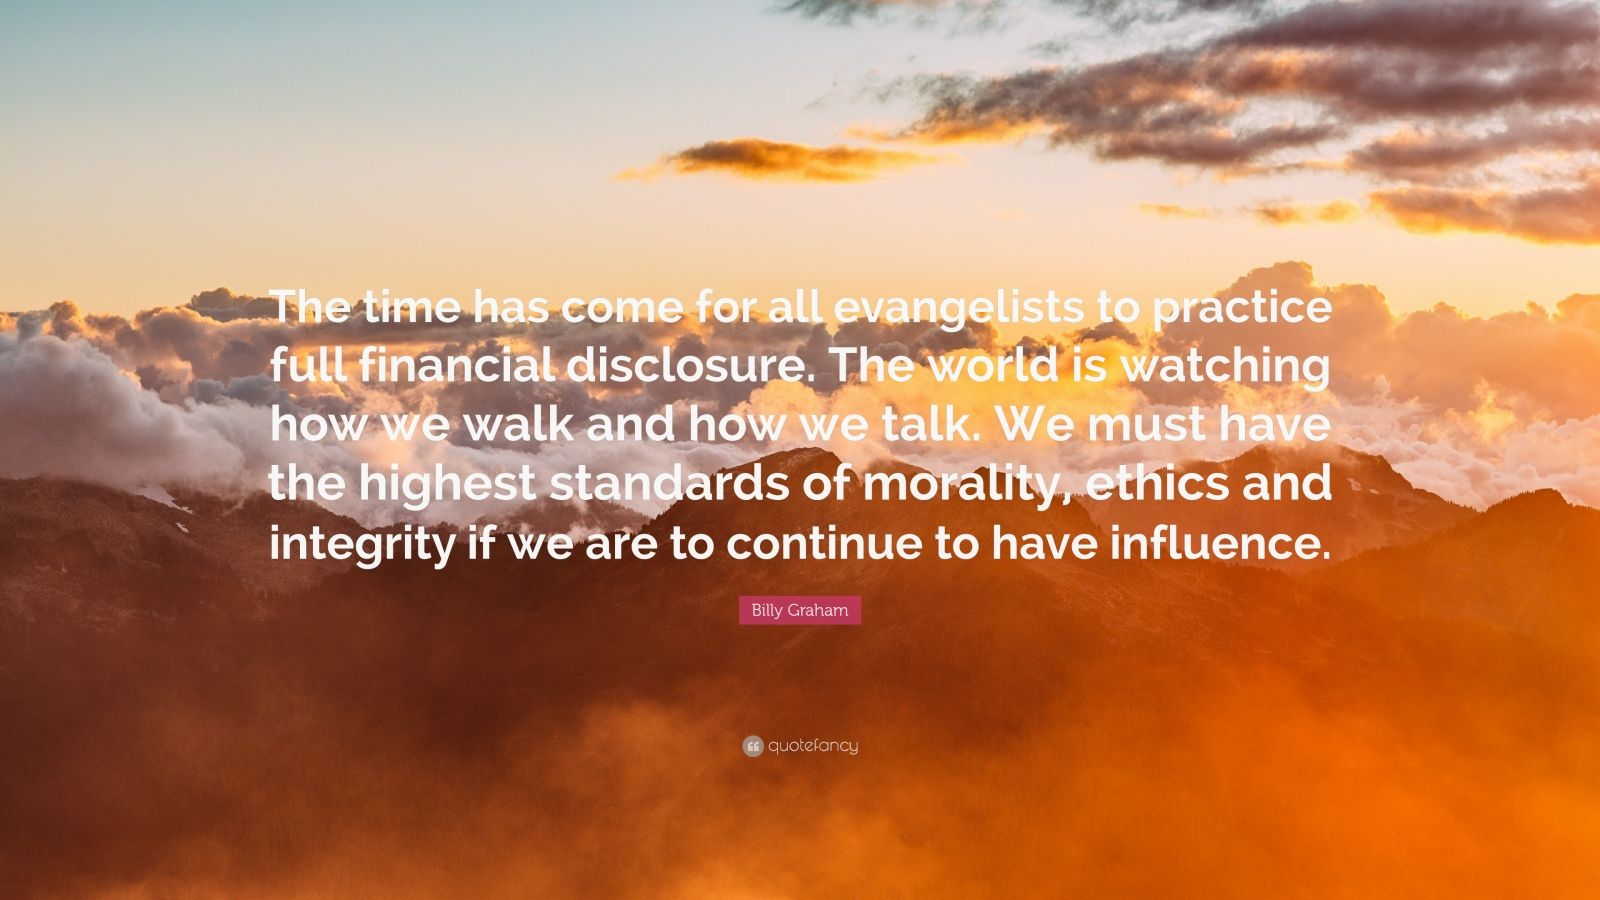 """Billy Graham Quote: """"The time has come for all evangelists to practice full financial disclosure. The world is watching how we walk and how we talk. We must have the highest standards of morality, ethics and integrity if we are to continue to have influence."""""""